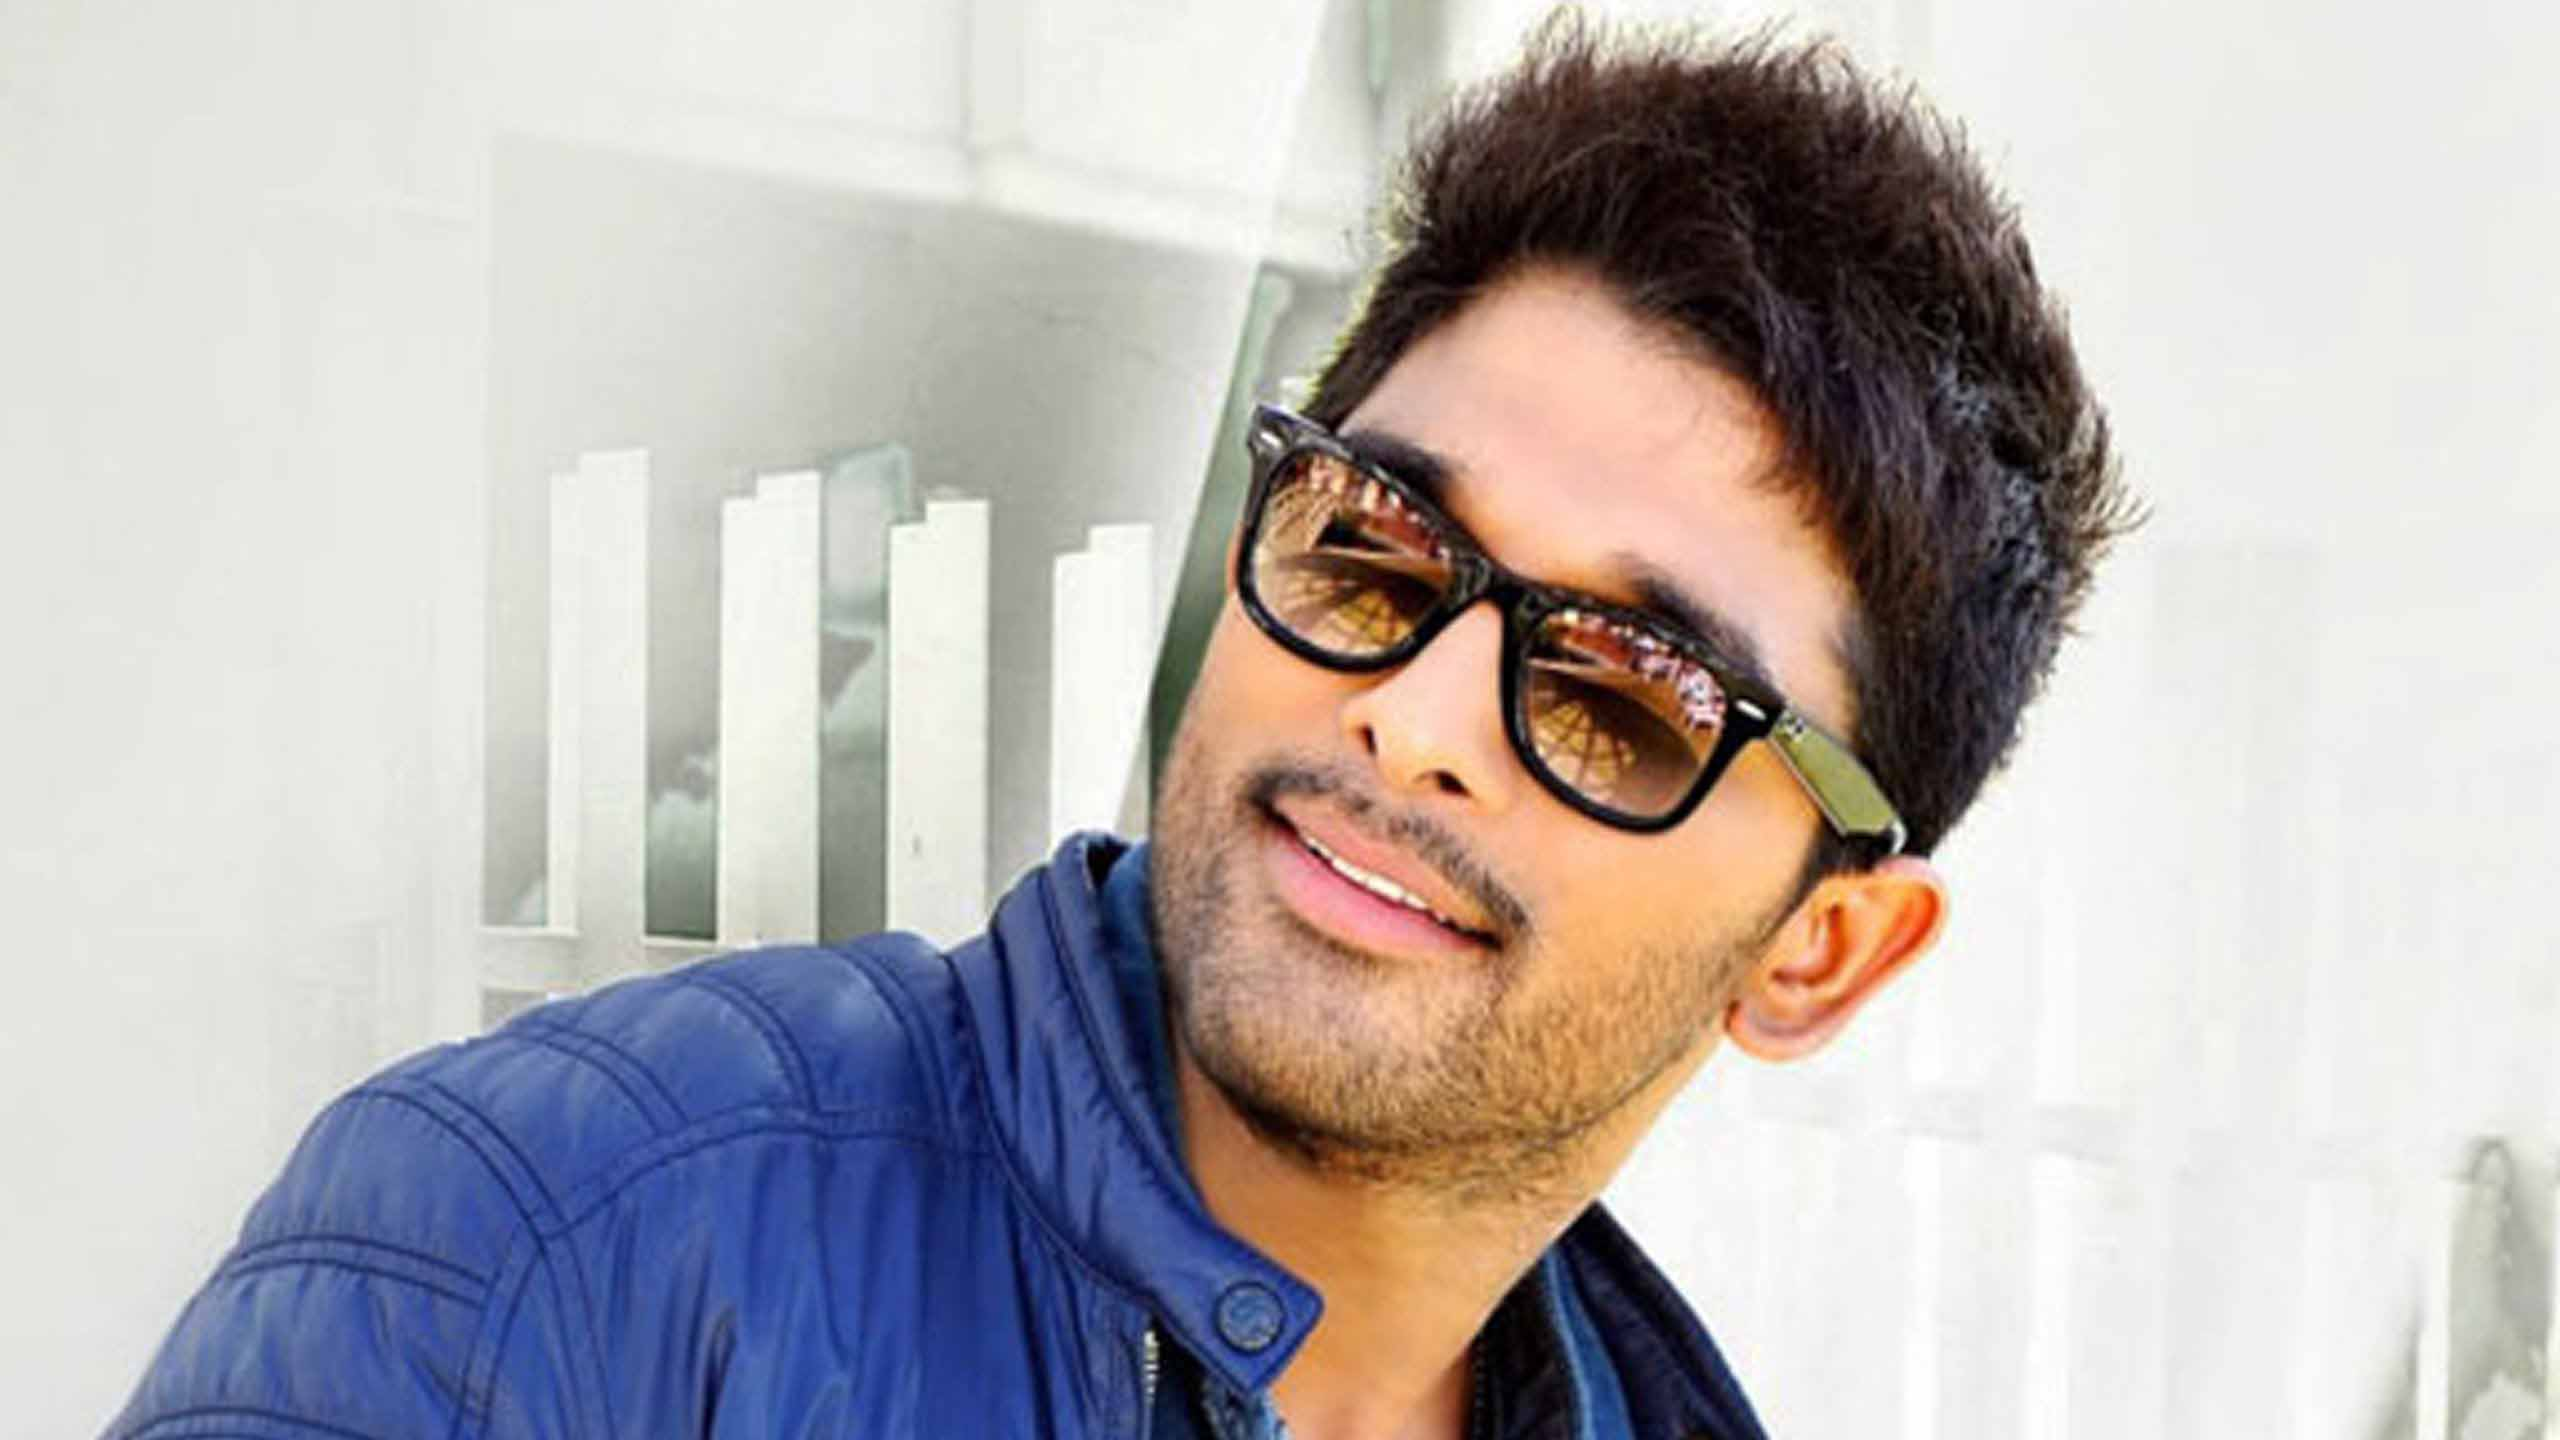 allu arjun dj photos full hd download